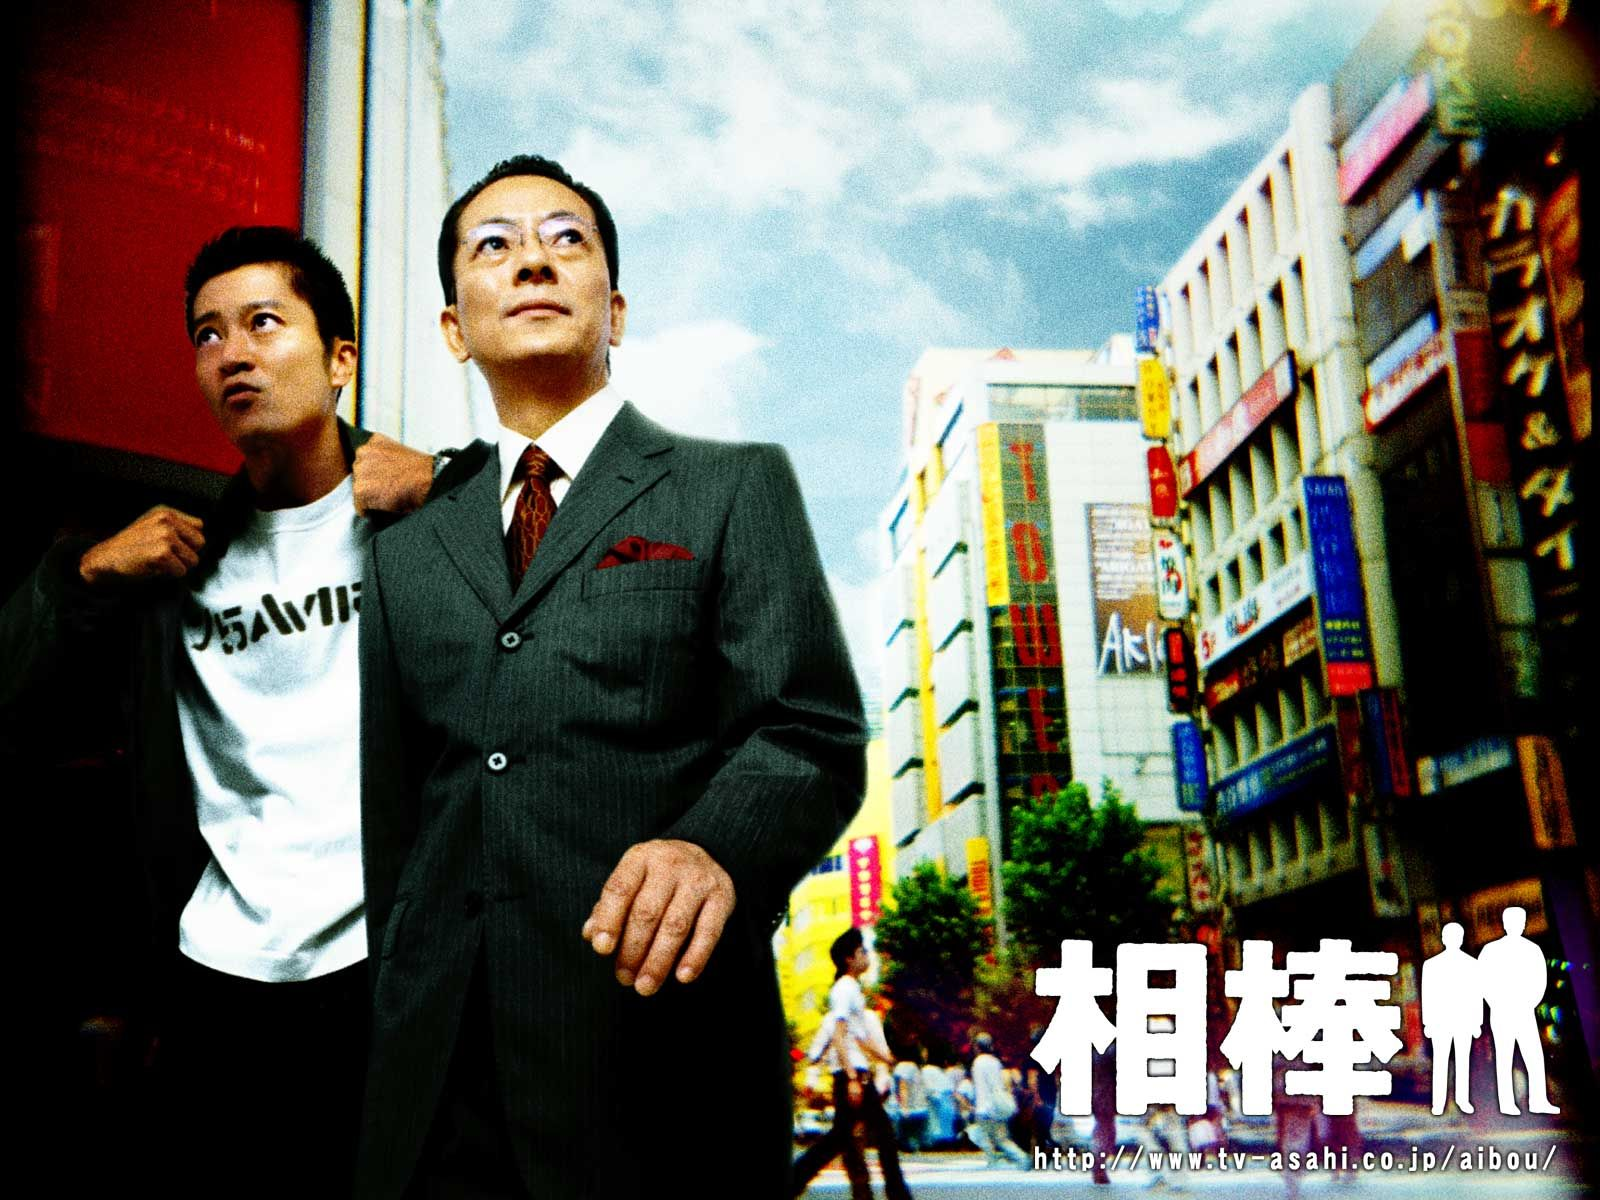 9 Best Aibou Images Movies Movie Tv Movie Posters